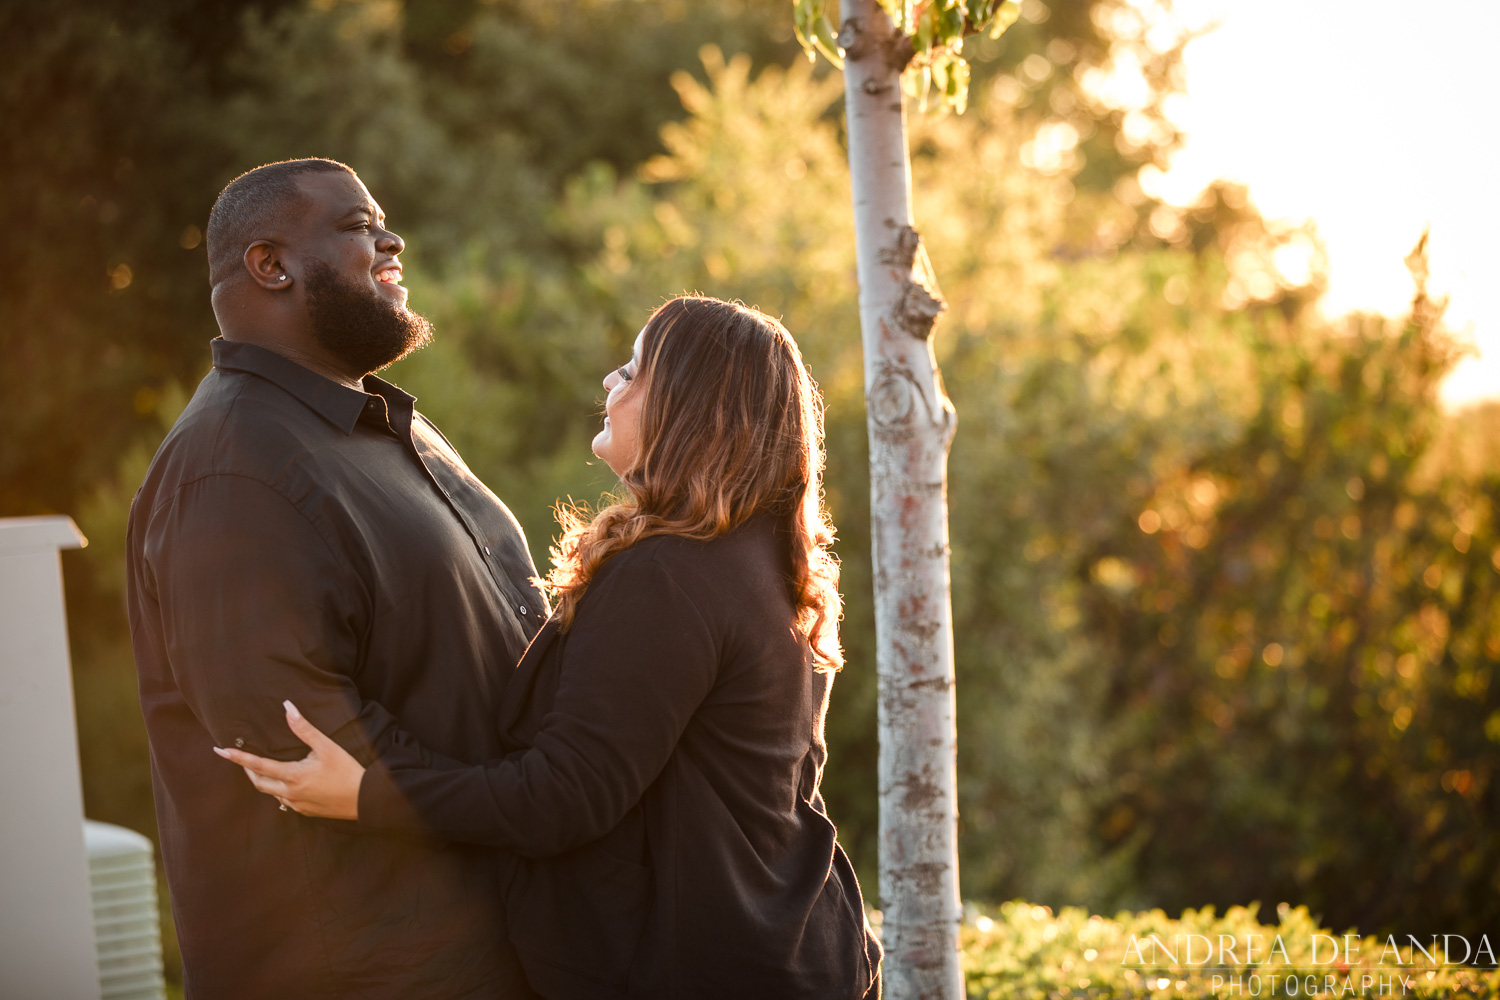 Evergreen-California-Engagement-session-Andrea-de-Anda-photography_-14.jpg